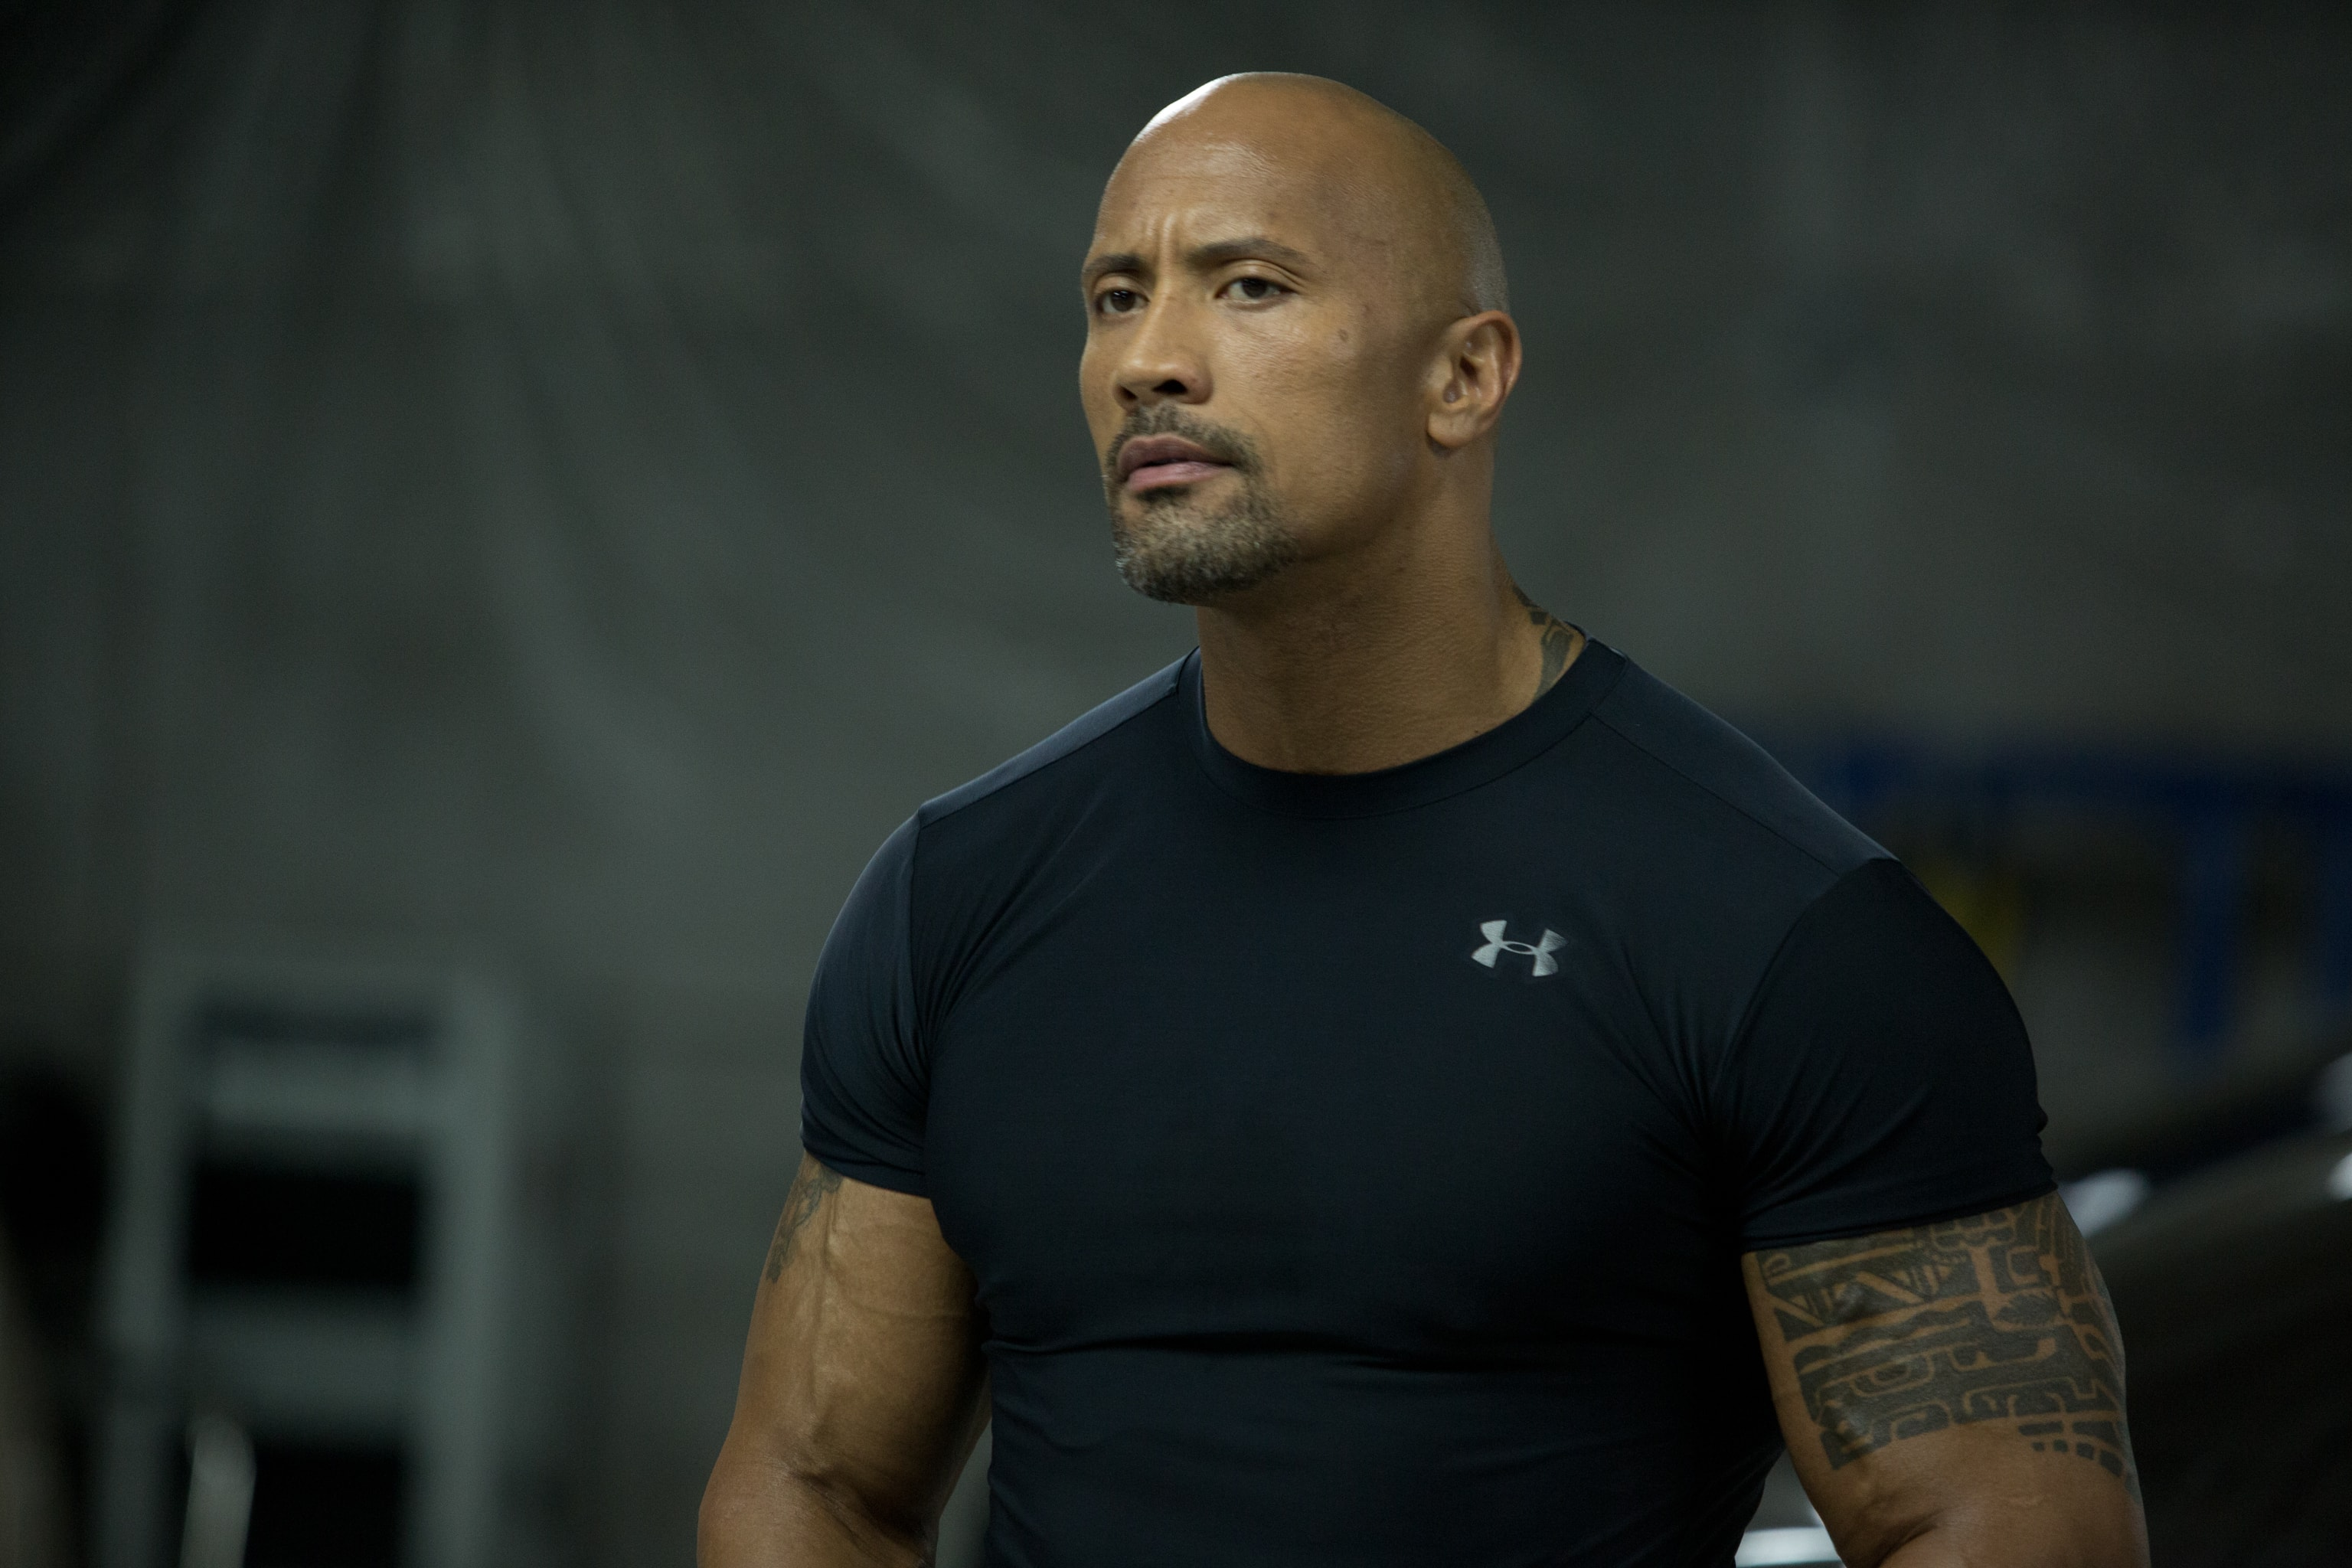 Dwayne Johnson Wallpapers hd Dwayne Johnson widescreen wallpapers